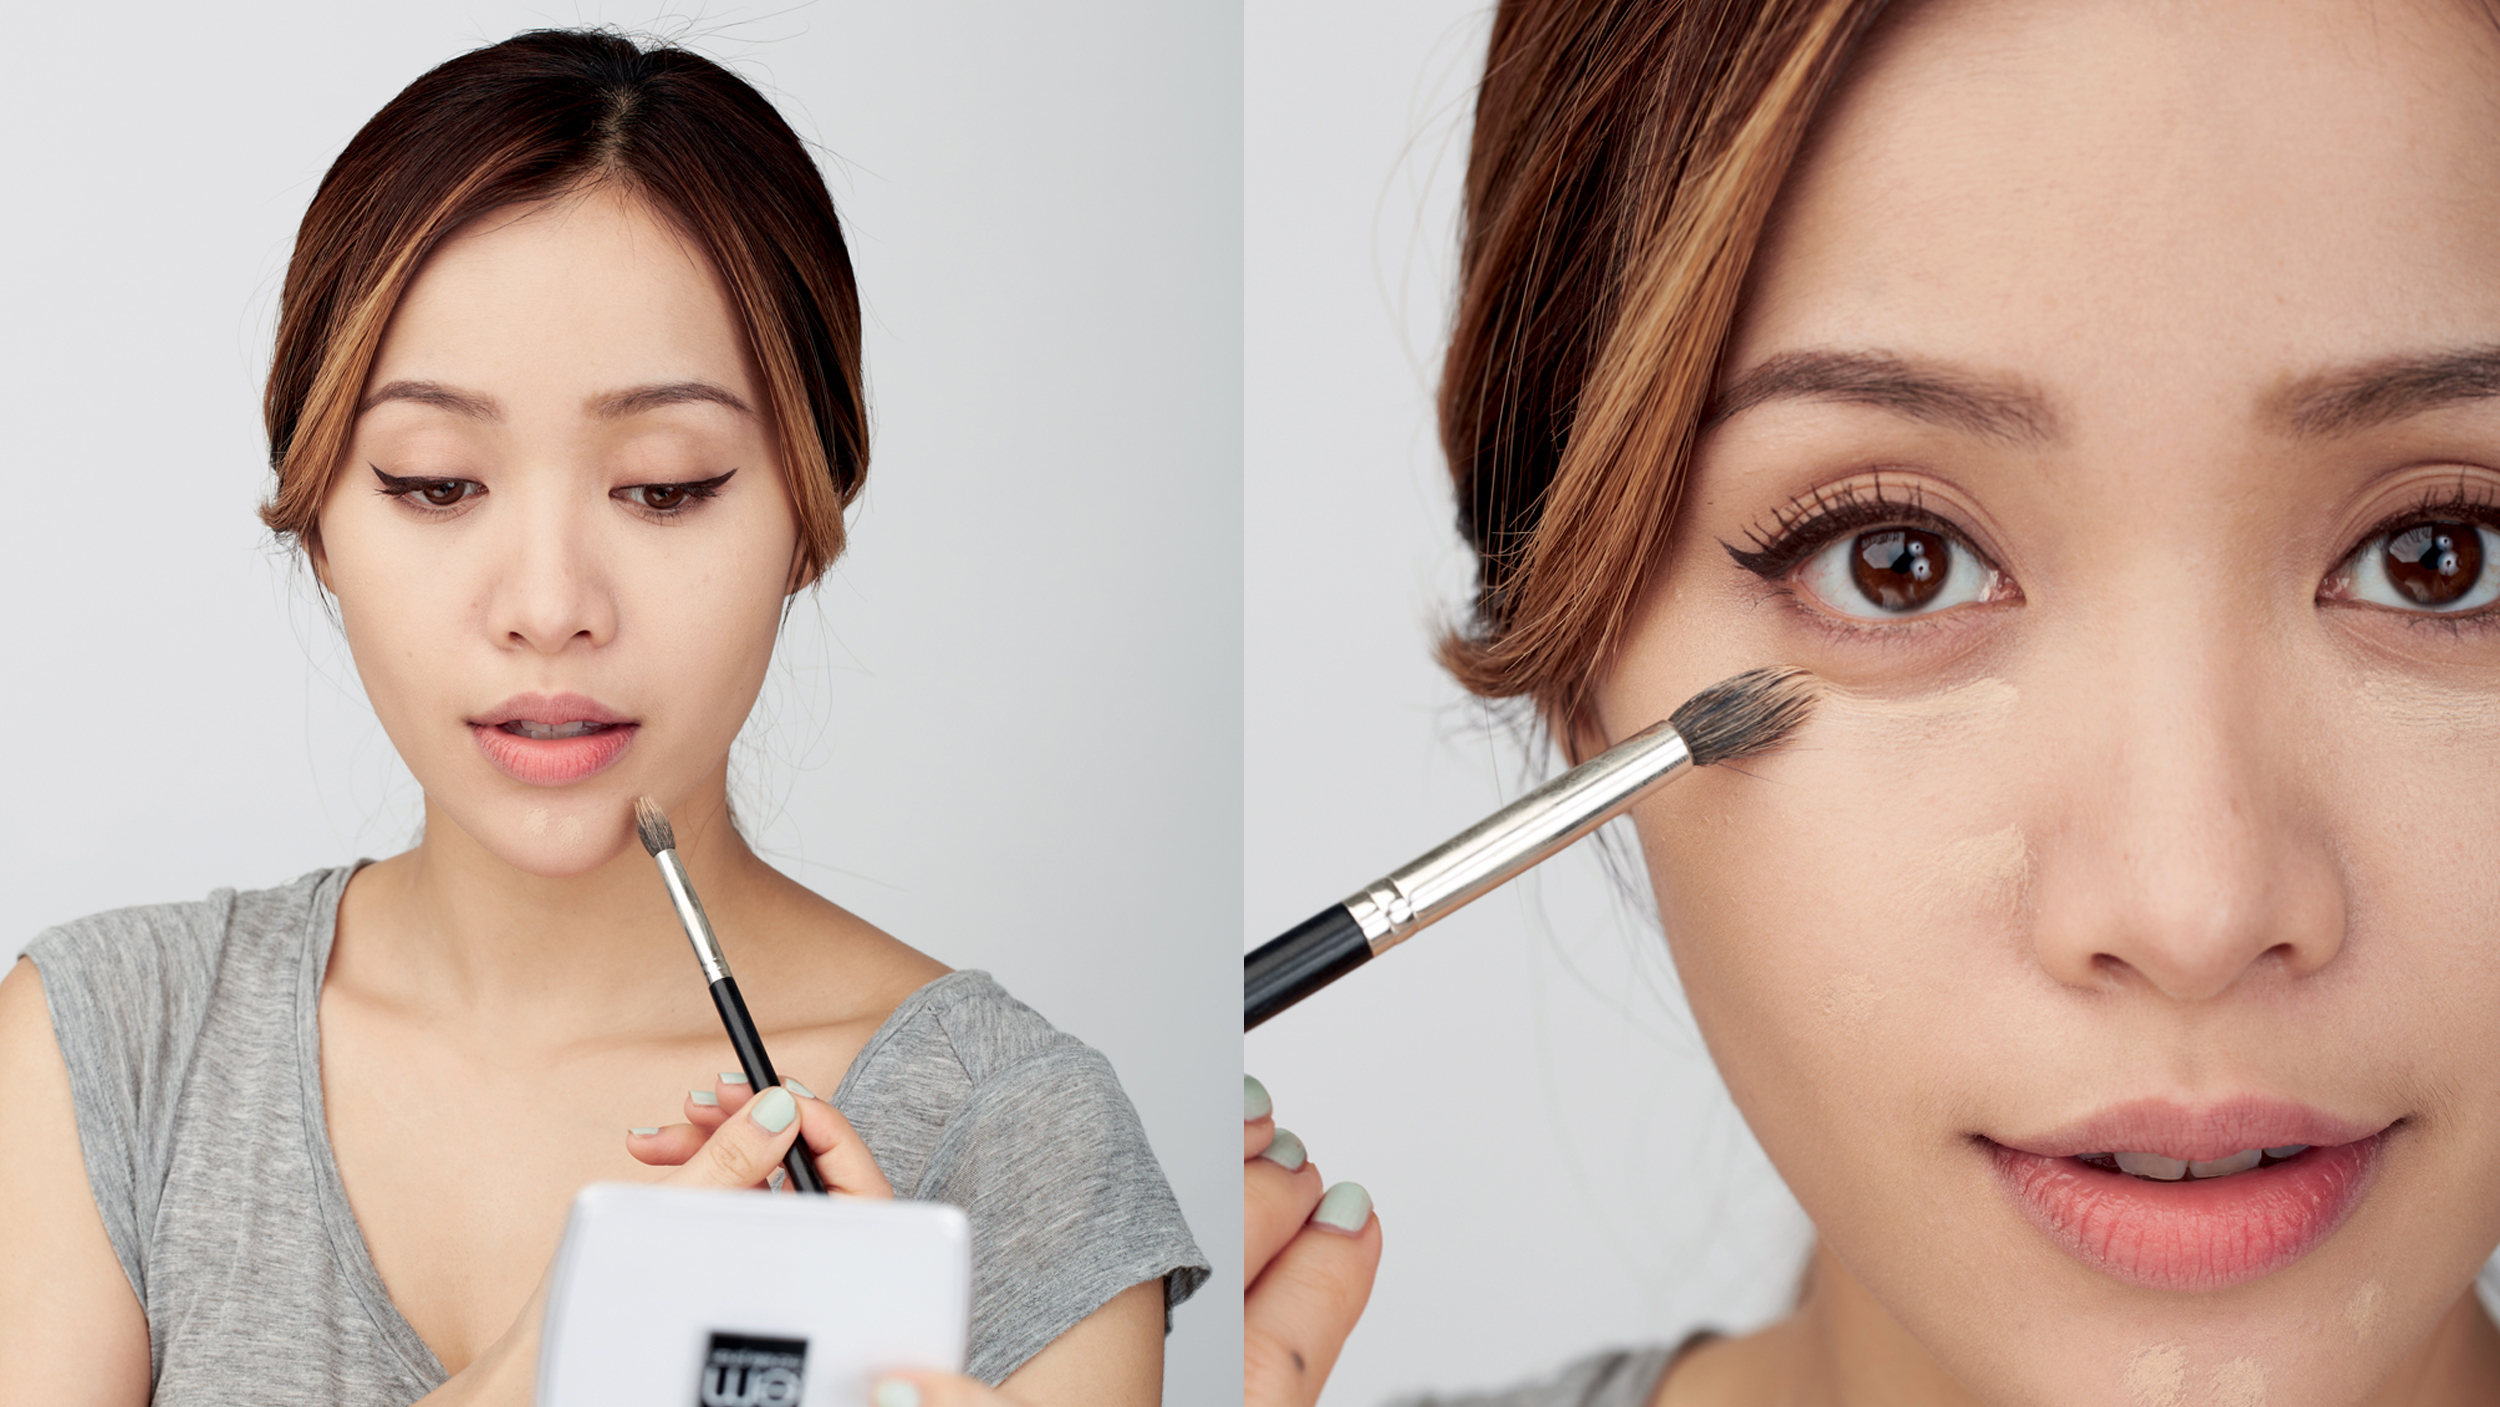 Michelle Phan Is Leaving Ipsy And the sampling company is launching an e-commerce site called Shopper. By Cheryl Wischhover Sep 22, , am EDT.